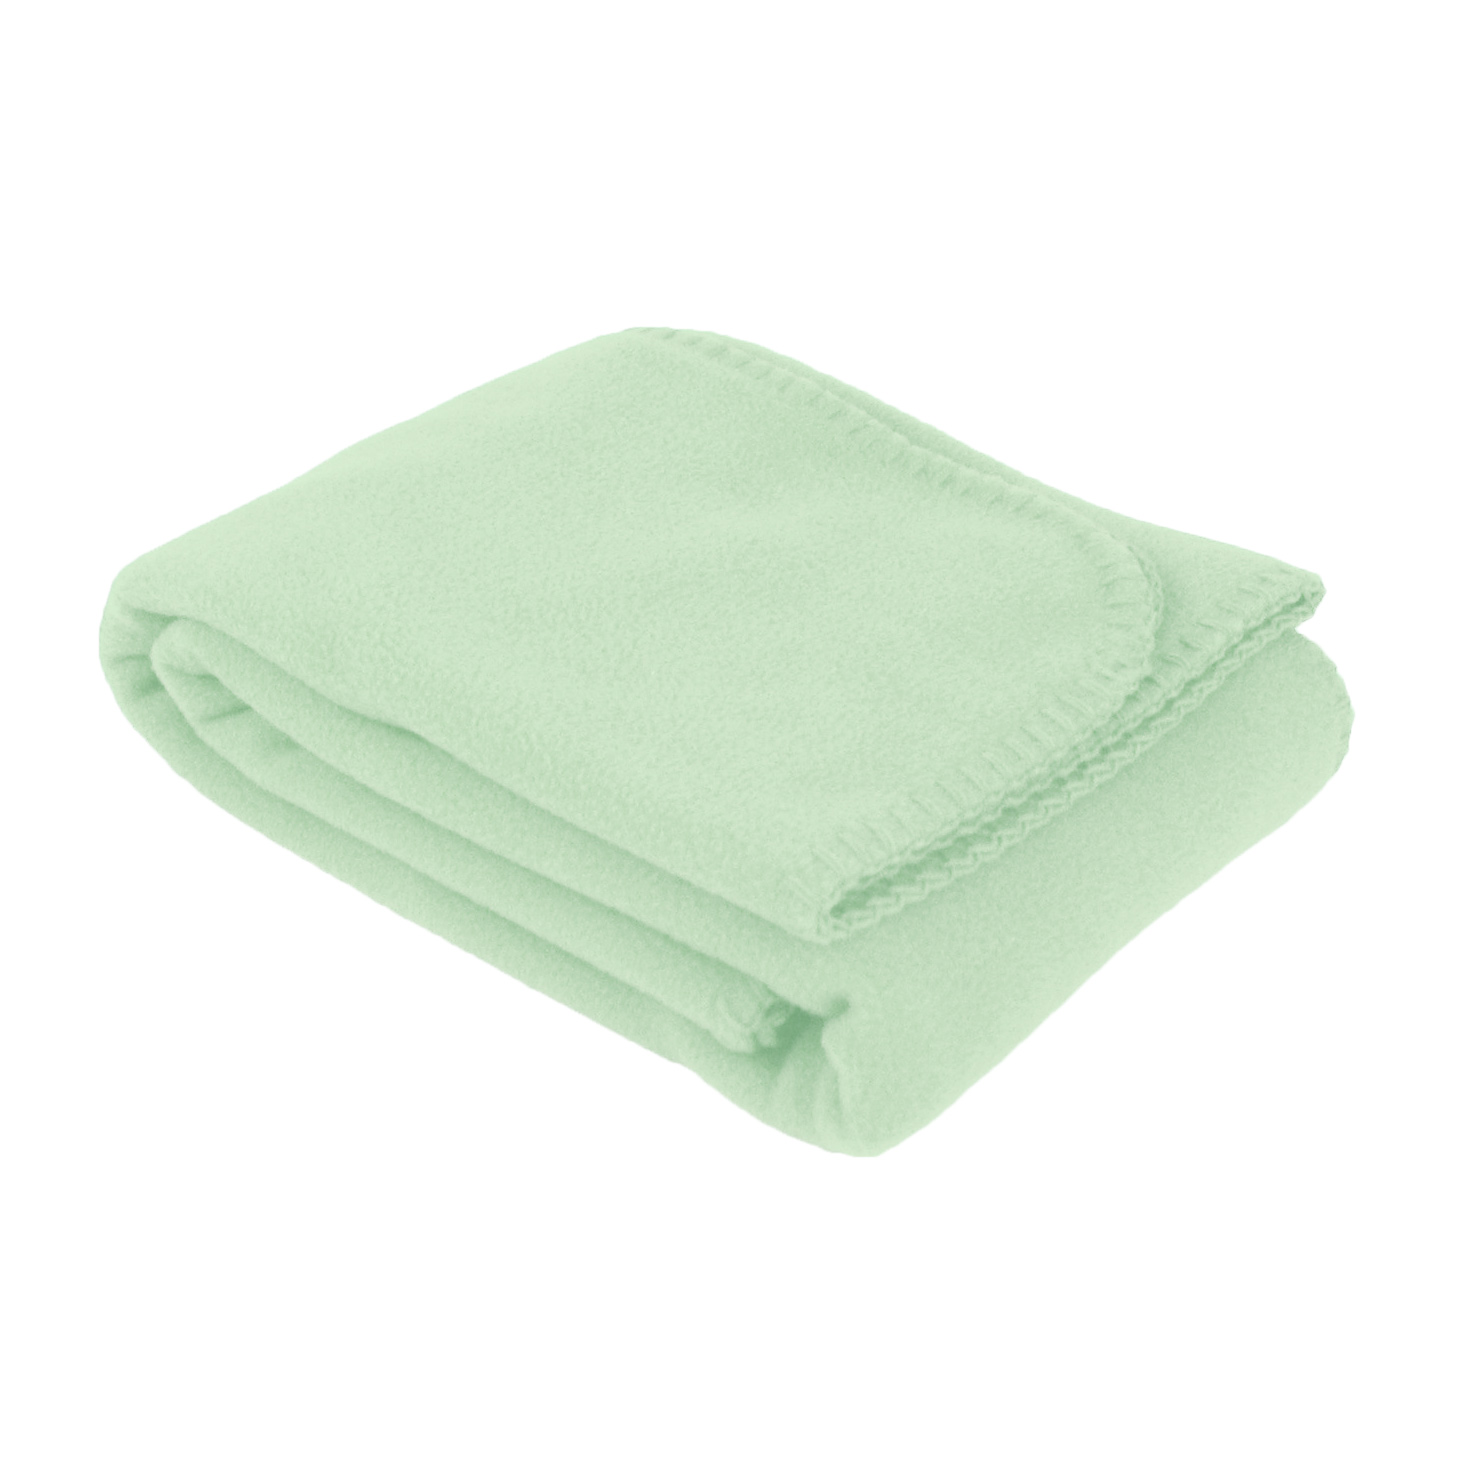 Baby lap blanket fleece blankets northeast fleece co - Baby deko mint ...